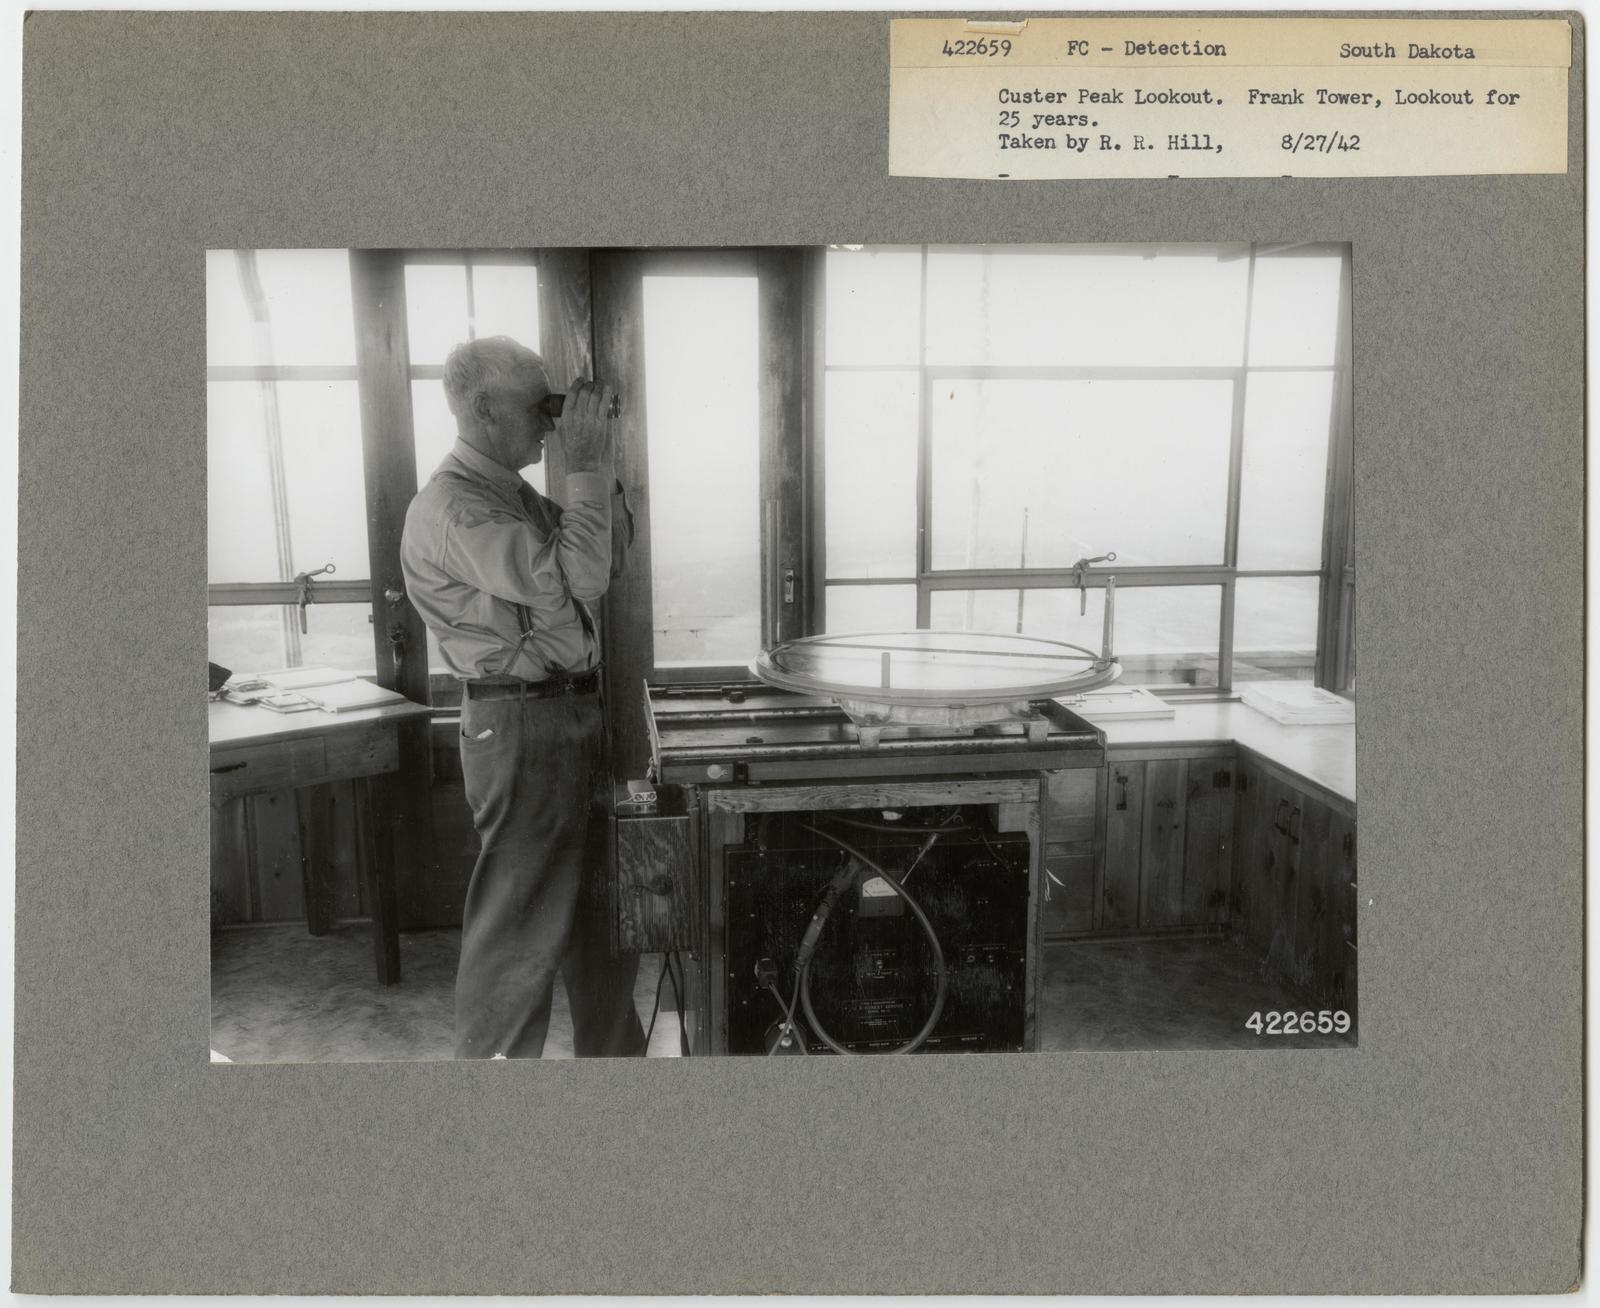 Fire Control: Detection - South Dakota